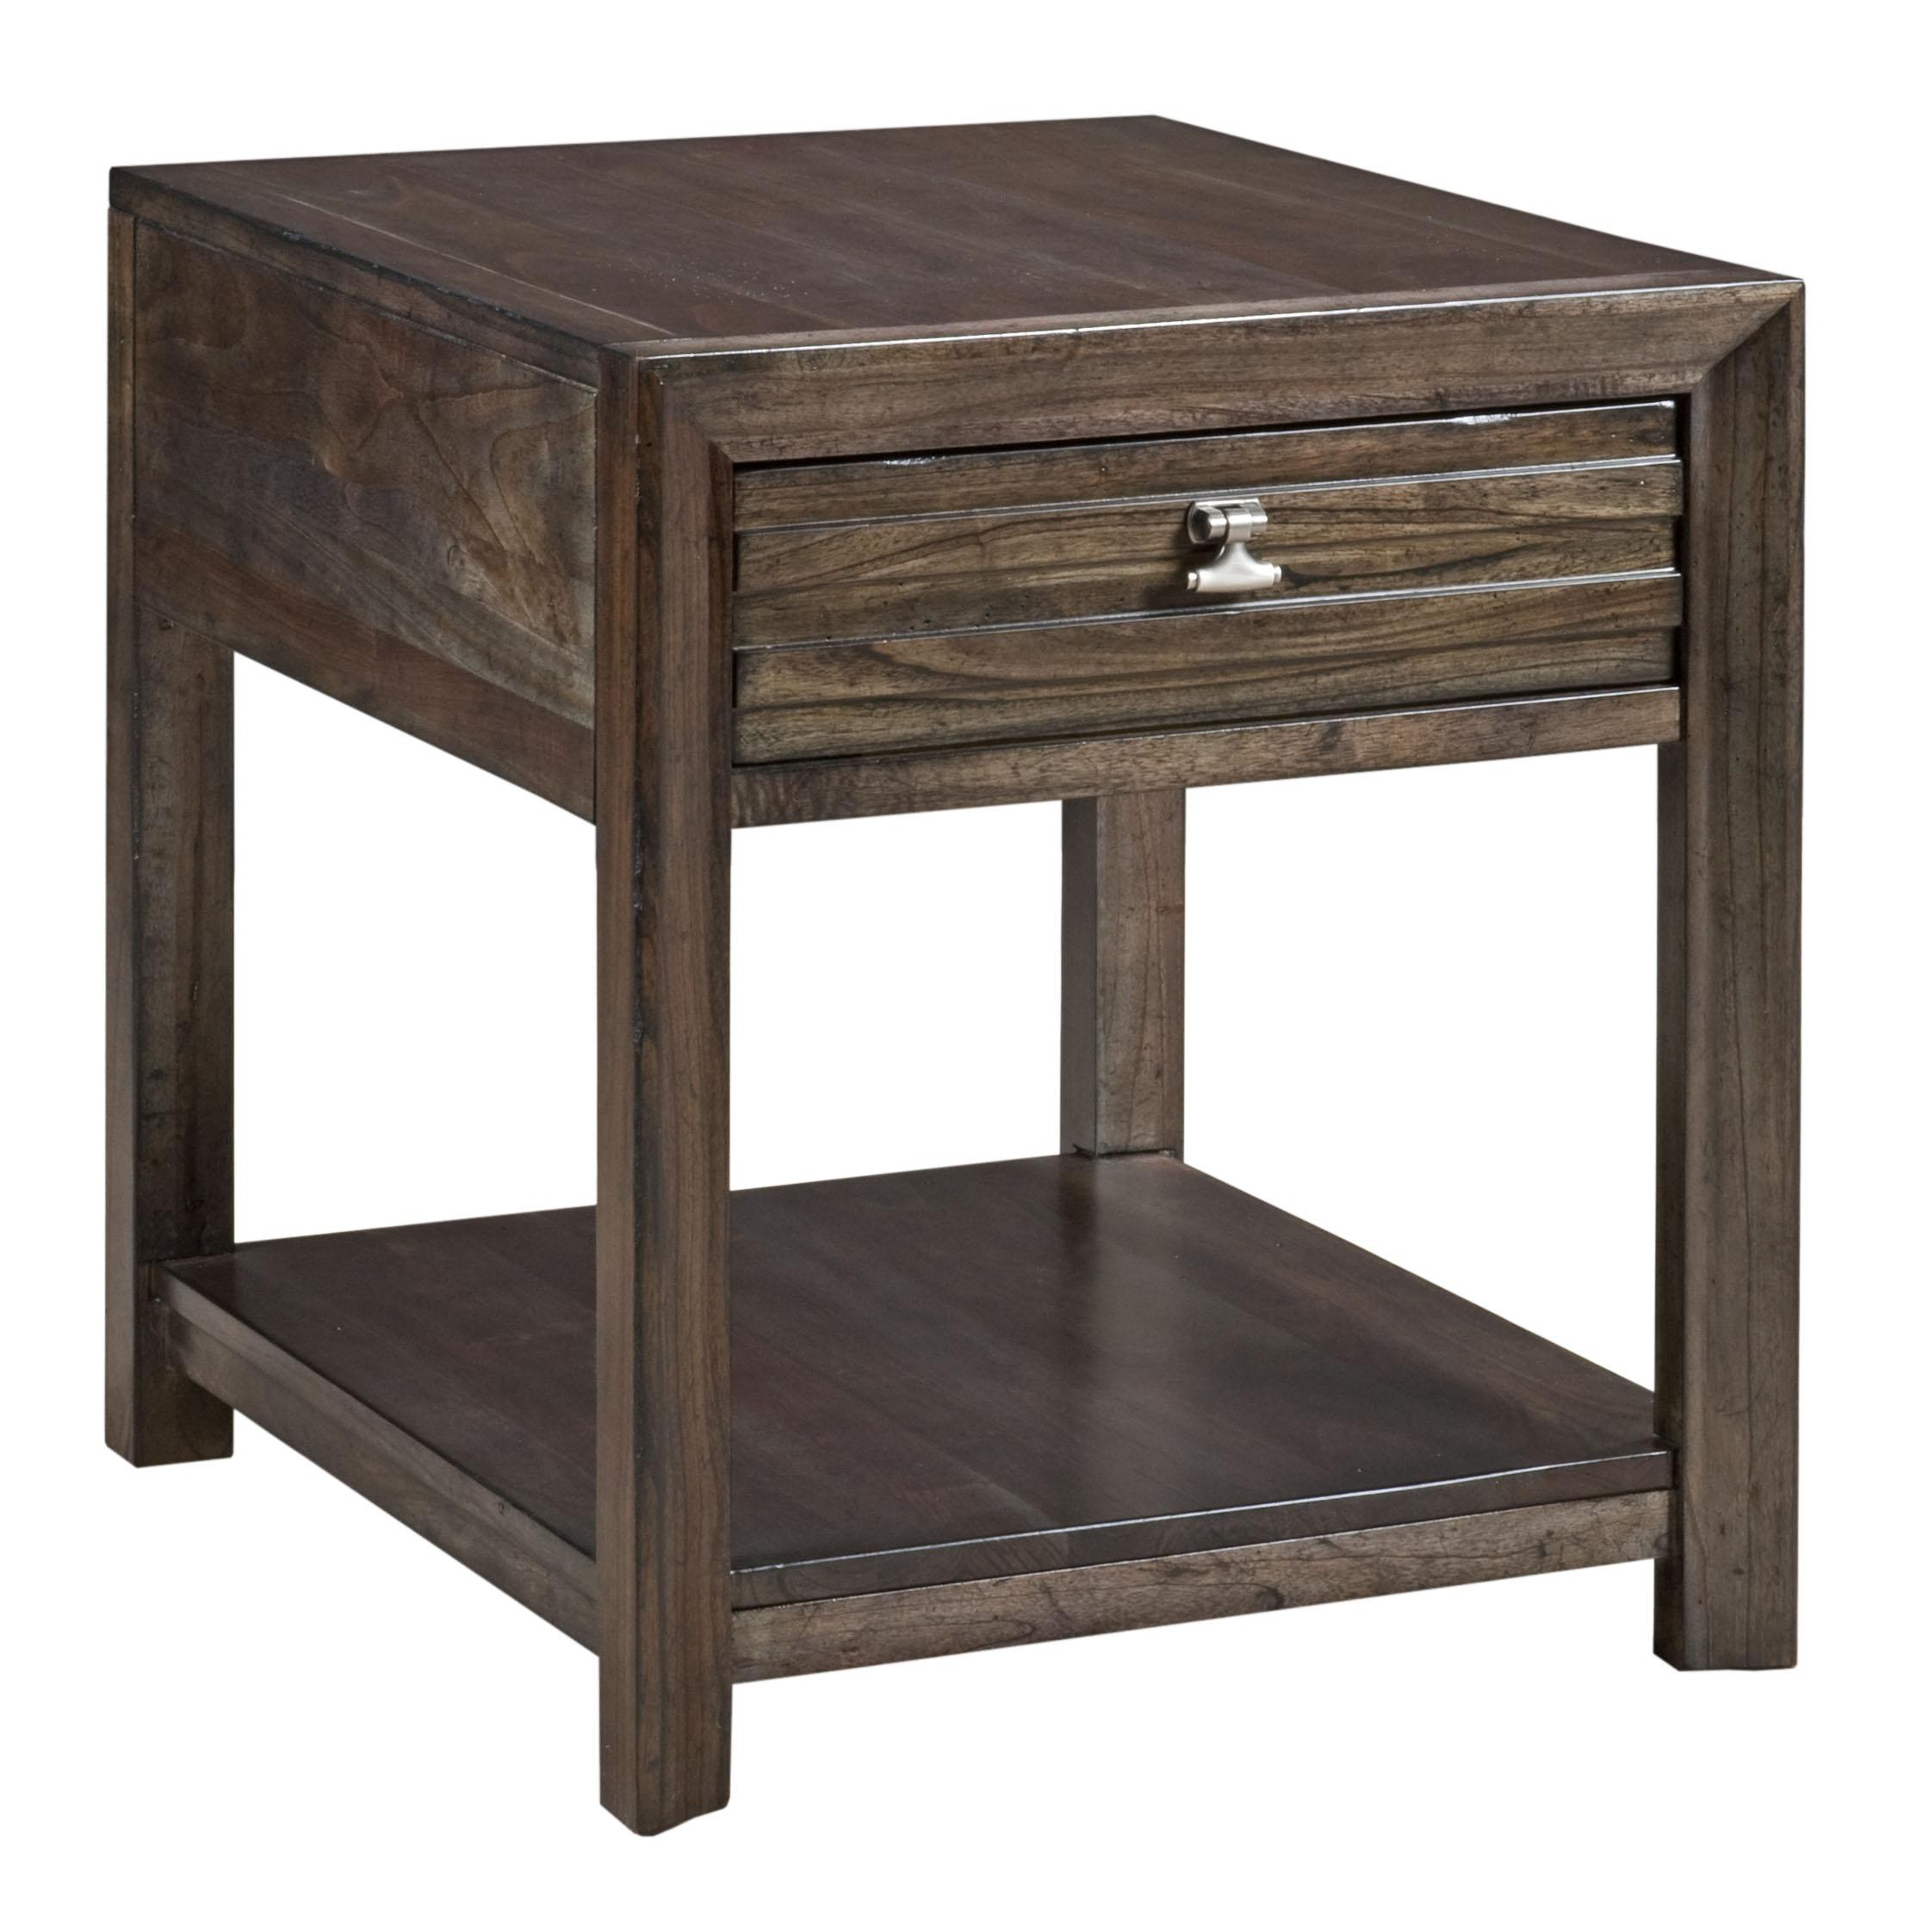 all accent tables becker furniture world products kincaid color montreat table groups drawer end metal and glass nightstand black cherry coffee avalon round wine rack tower room